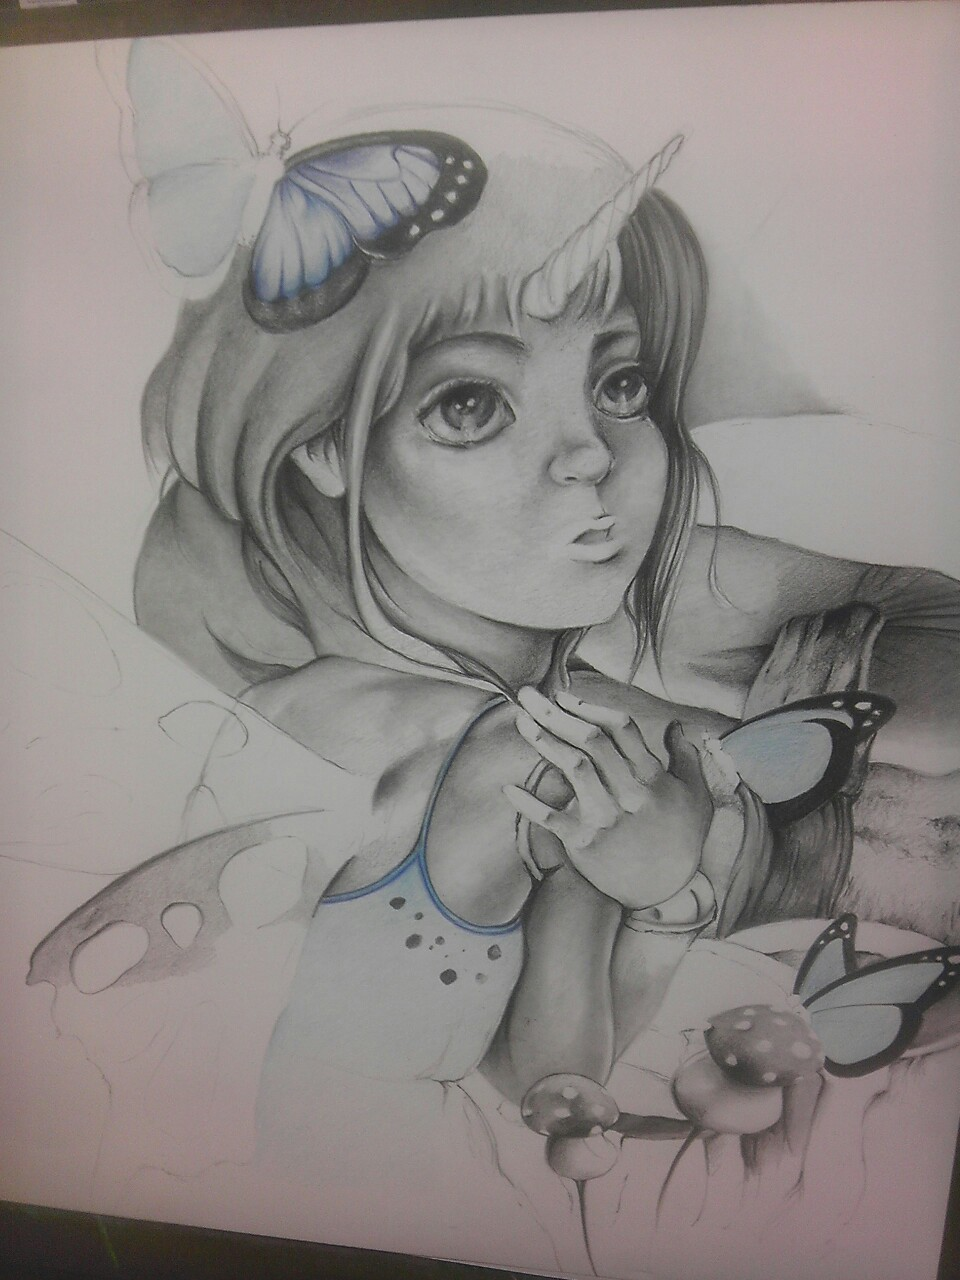 A new ball-jointed doll drawing in progress! She wants to become a butterfly so she can be free.